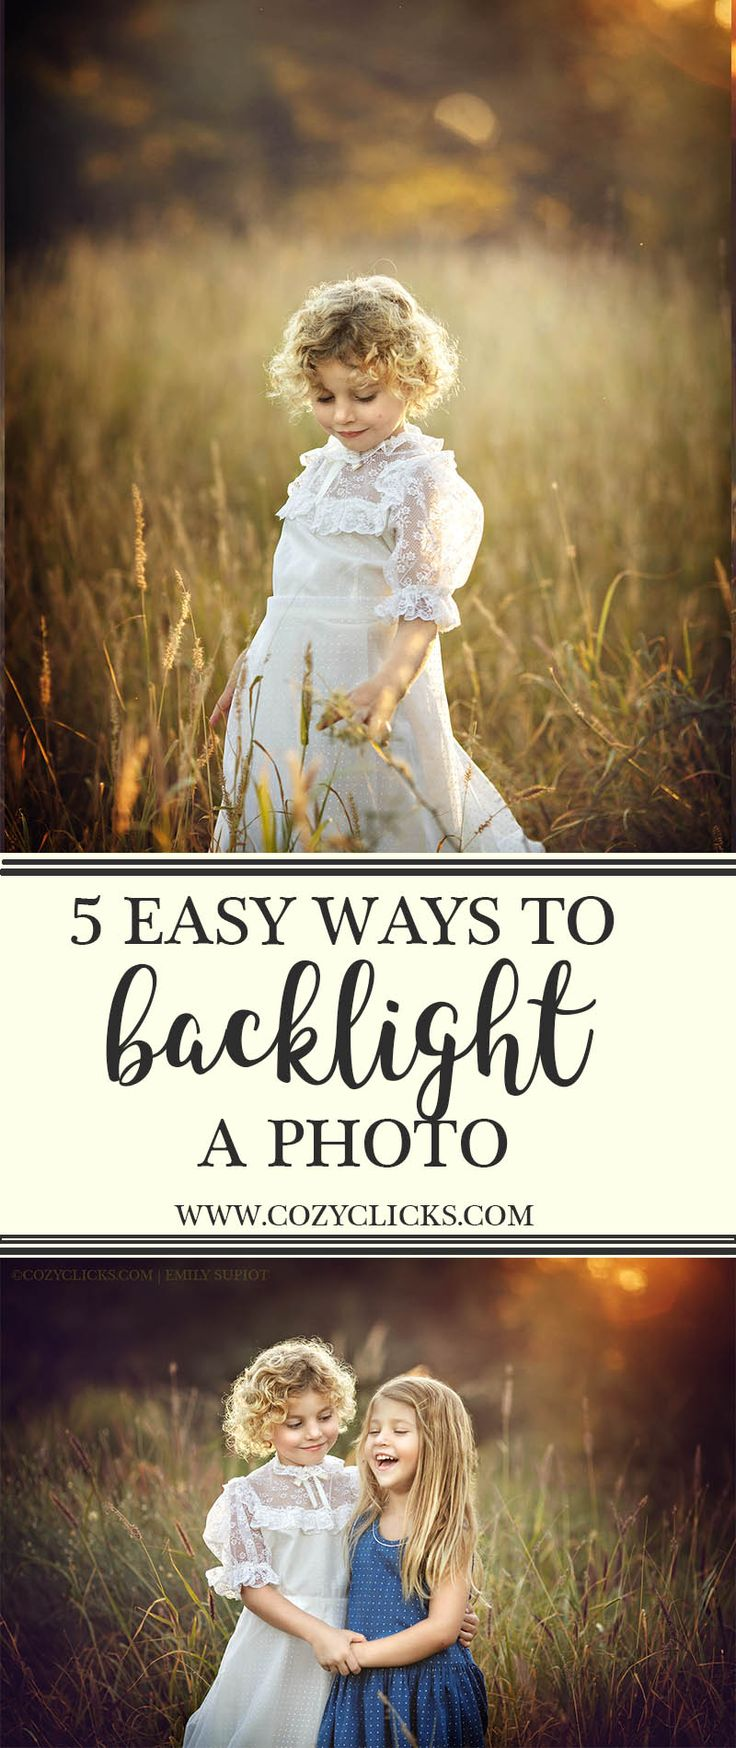 Want to know how to backlight a photo? Read here for 5 beginner photography tips on backlighting!